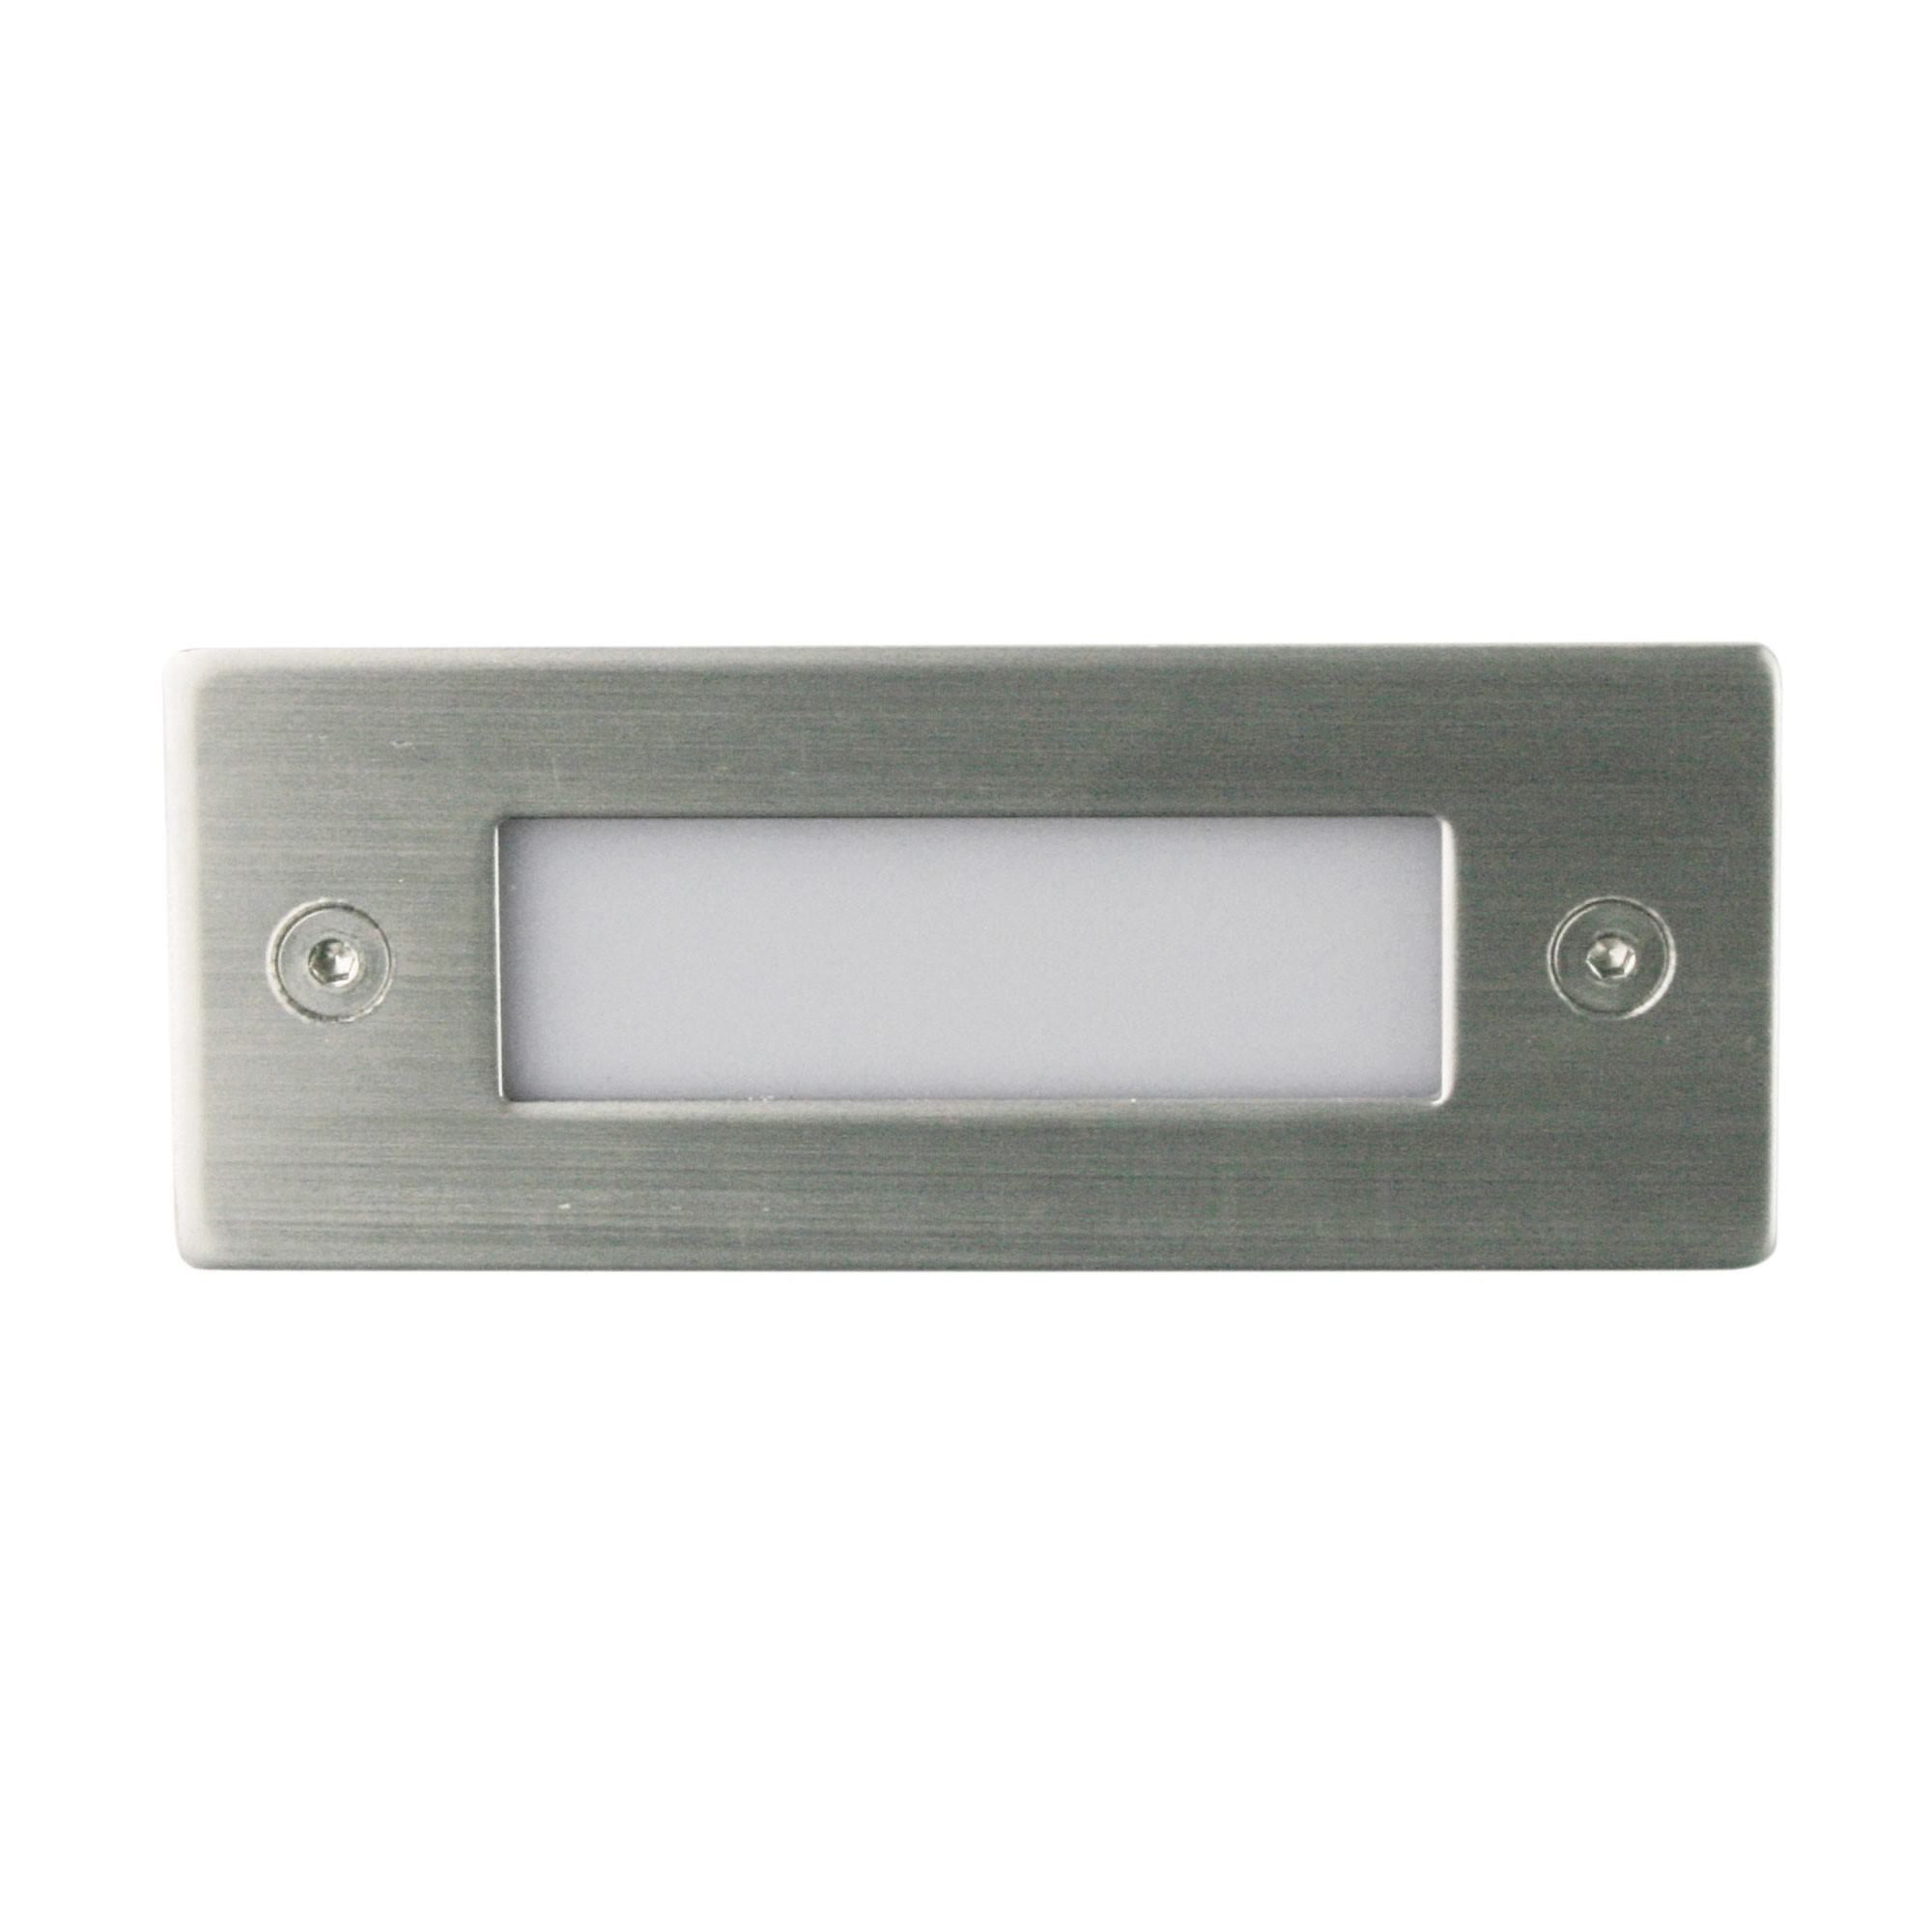 Slot IP54 Indoor / Outdoor LED Recessed Wall Light